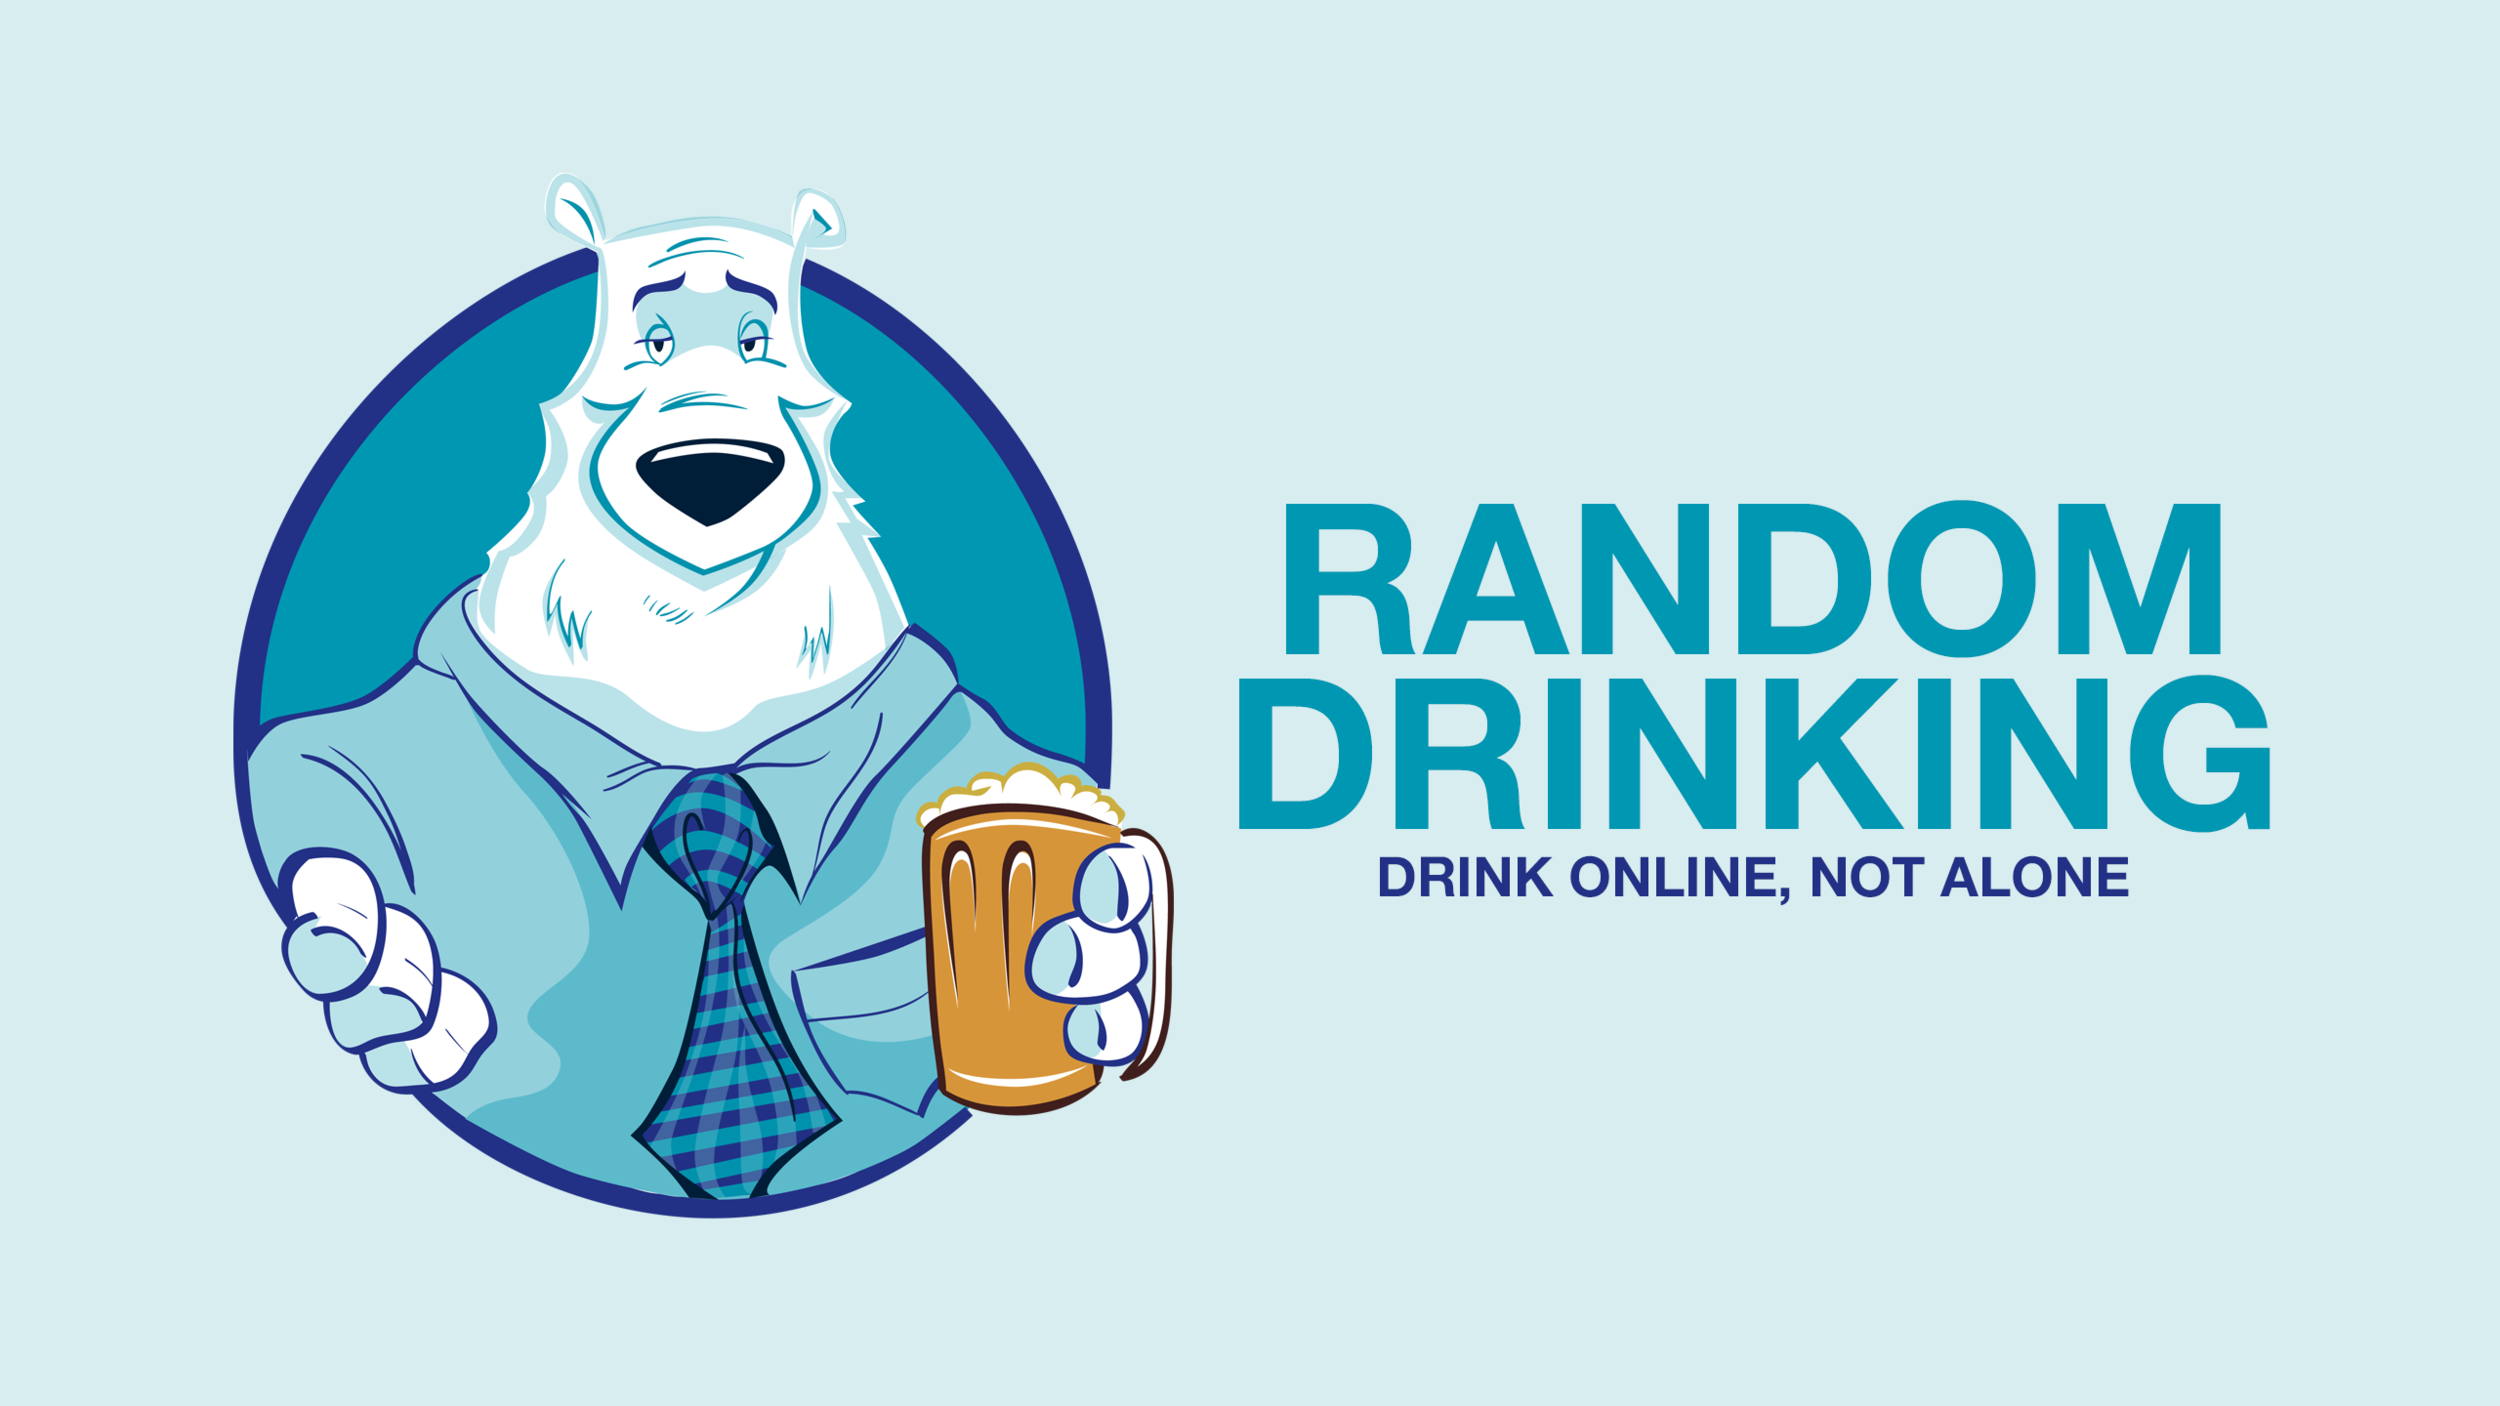 Random drinking Show - The only thing not random about this show is the drinking!